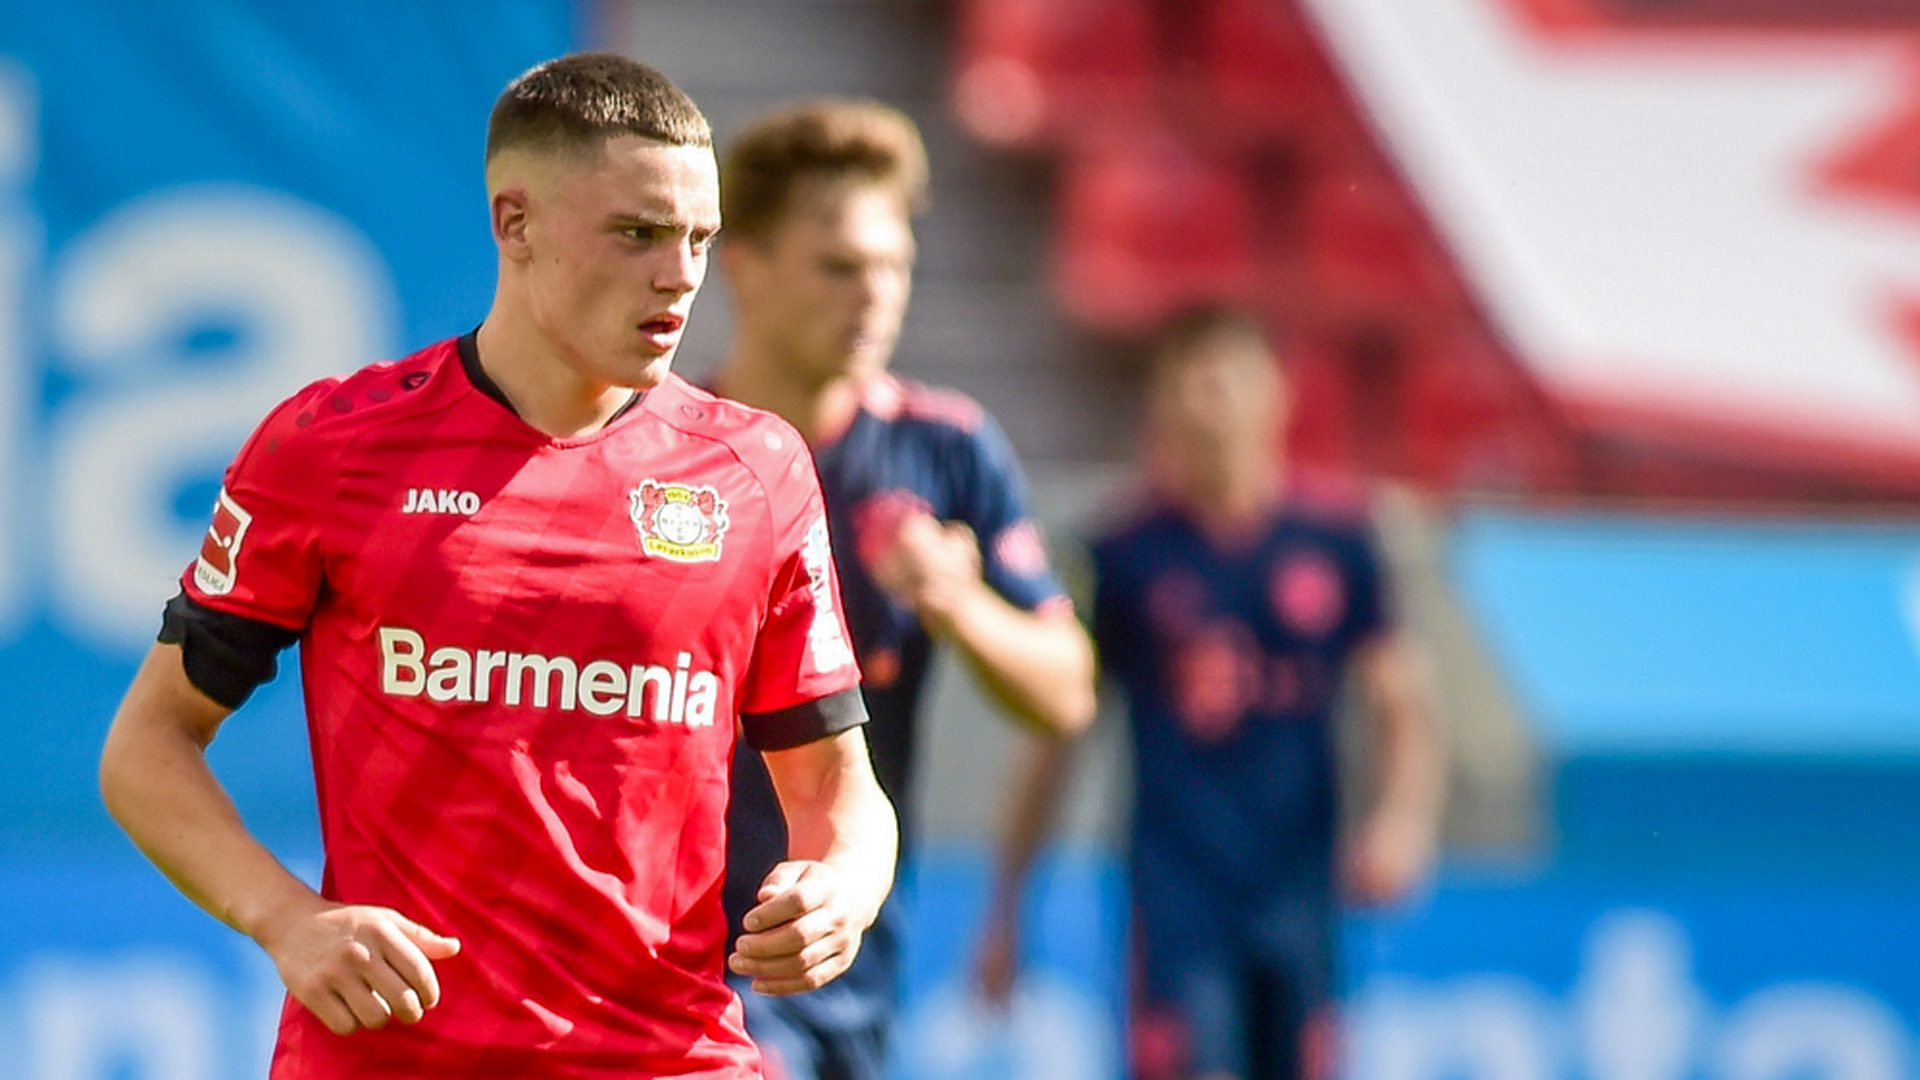 Bundesliga | Florian Wirtz becomes youngest goalscorer in Bundesliga history at 17 years and 34 days.